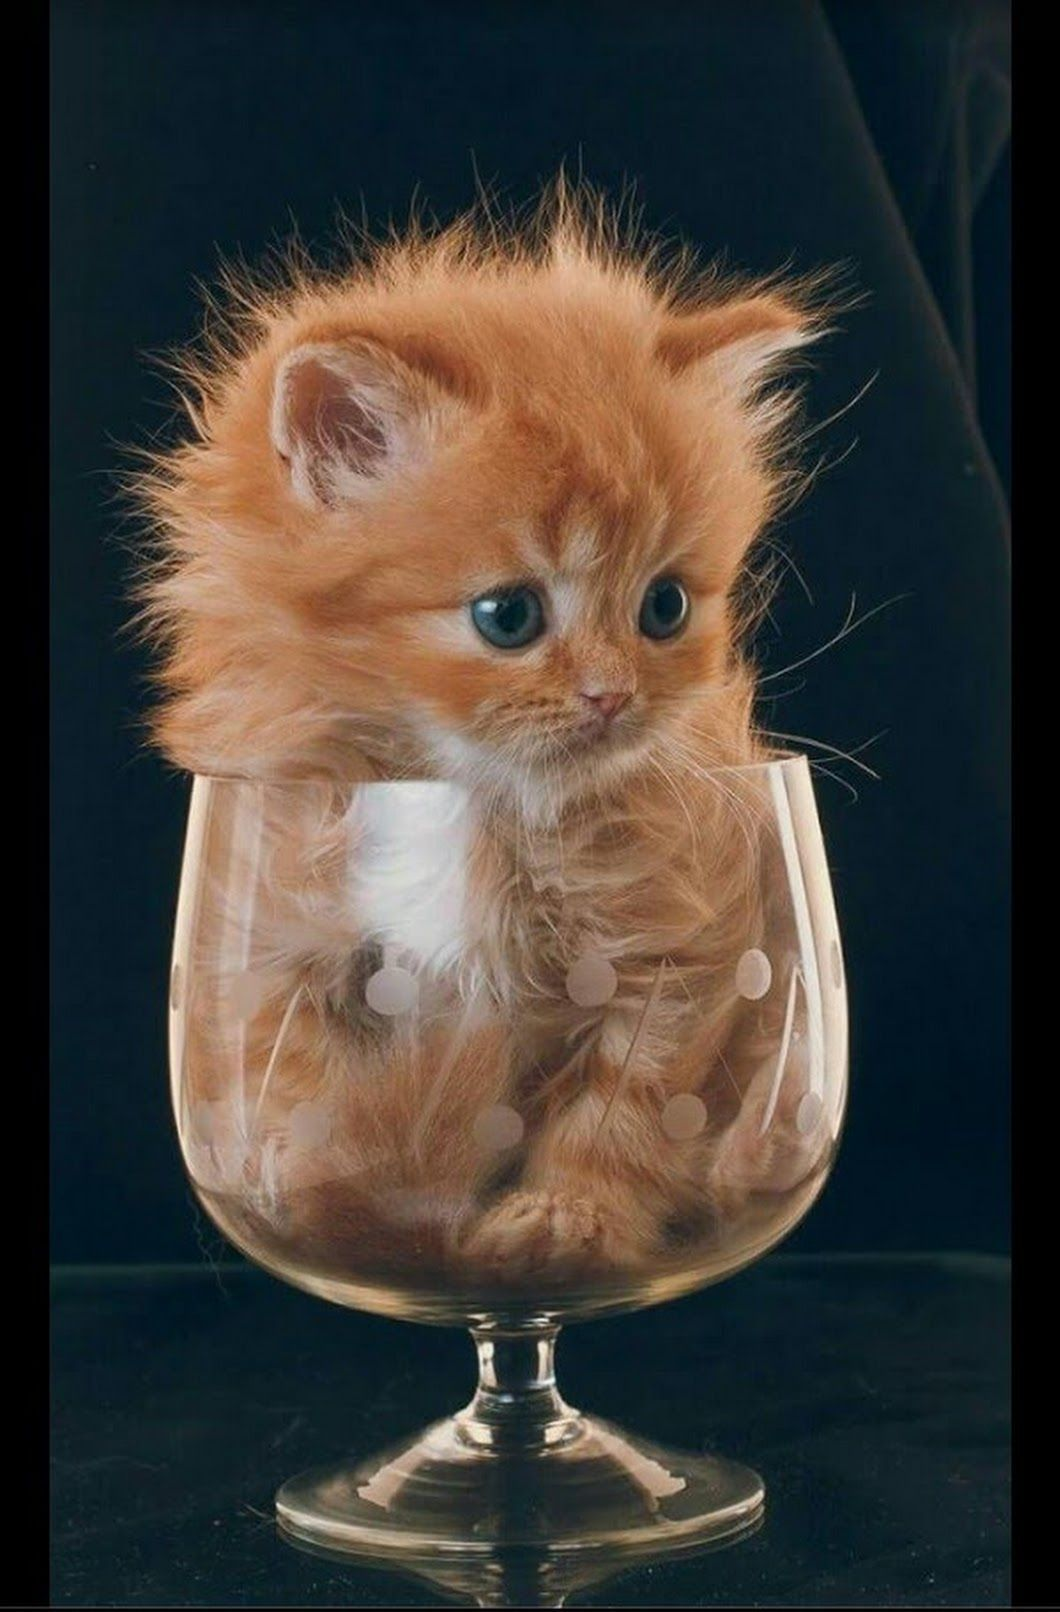 Kitty In A Cup Make It Out Of Orange Juice Cute Cats Cute Animals Cute Baby Cats